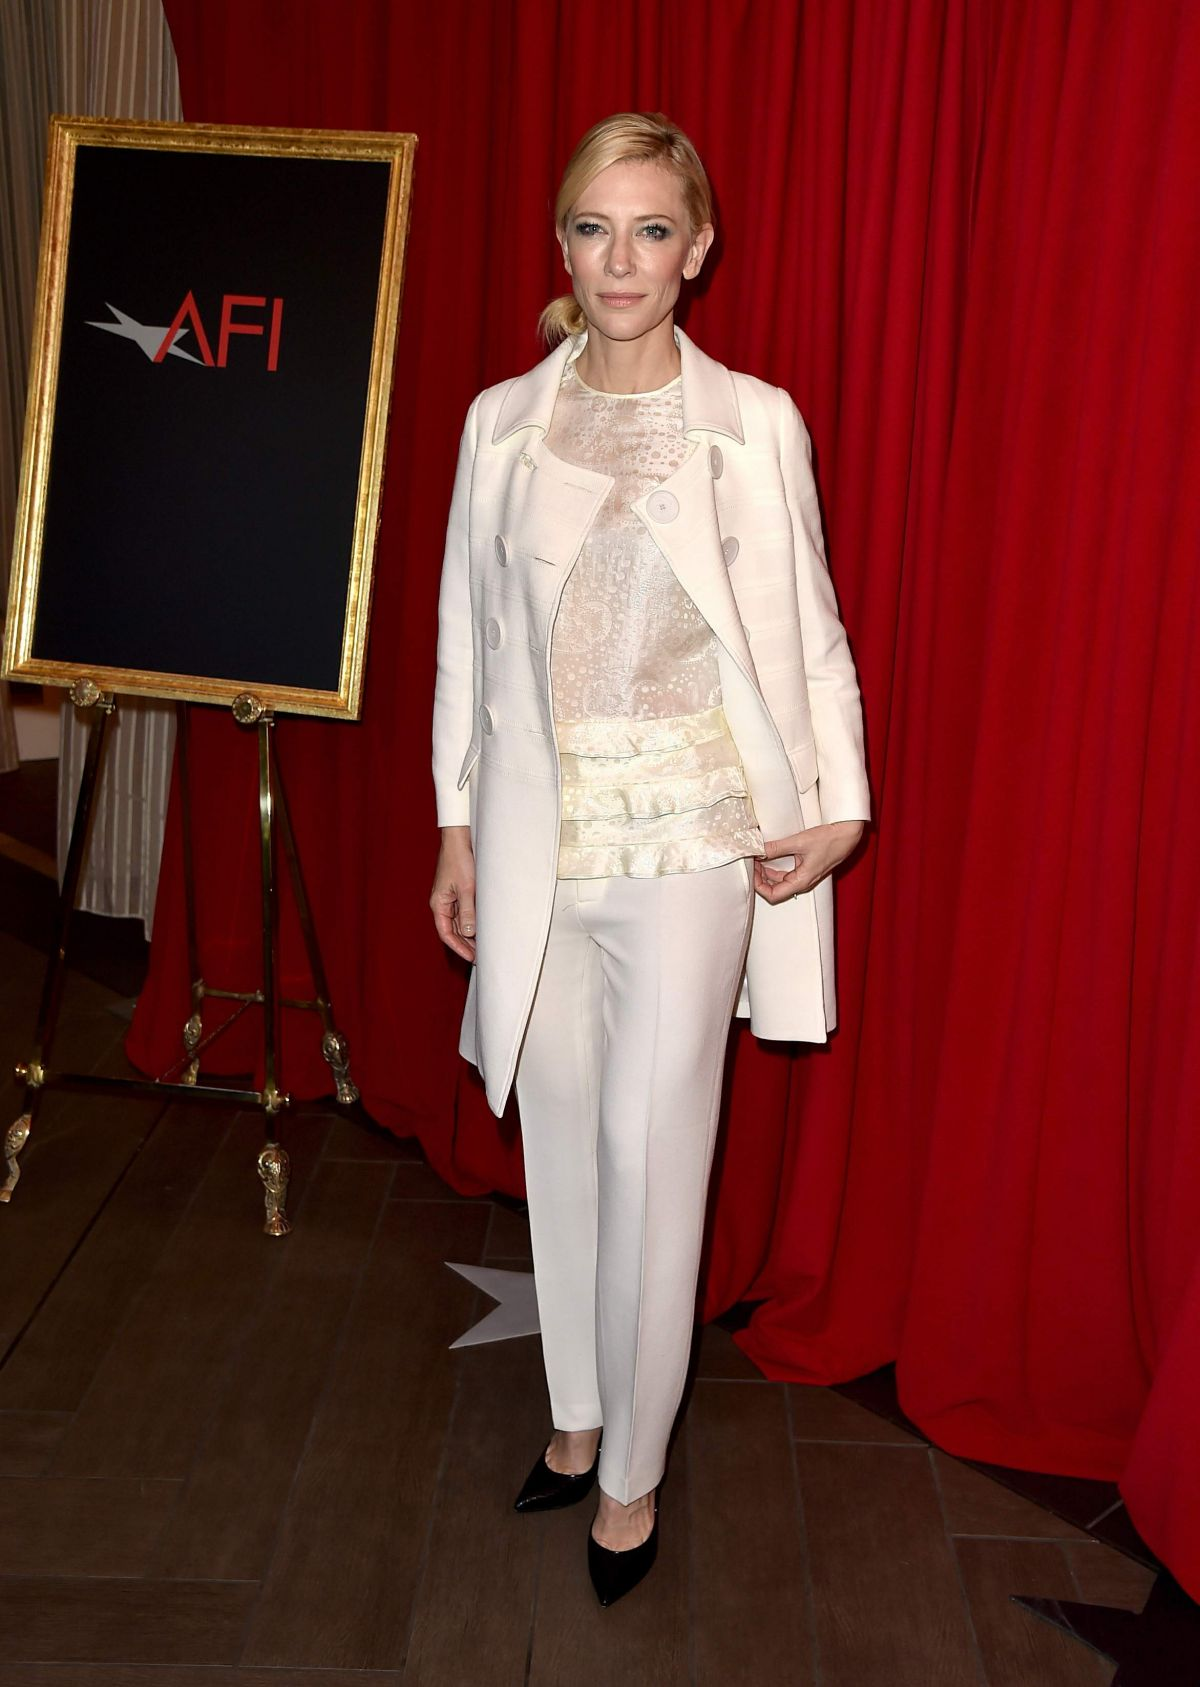 cate-blanchett-at-afi-awards-2016-in-beverly-hills-01-08-2016_3